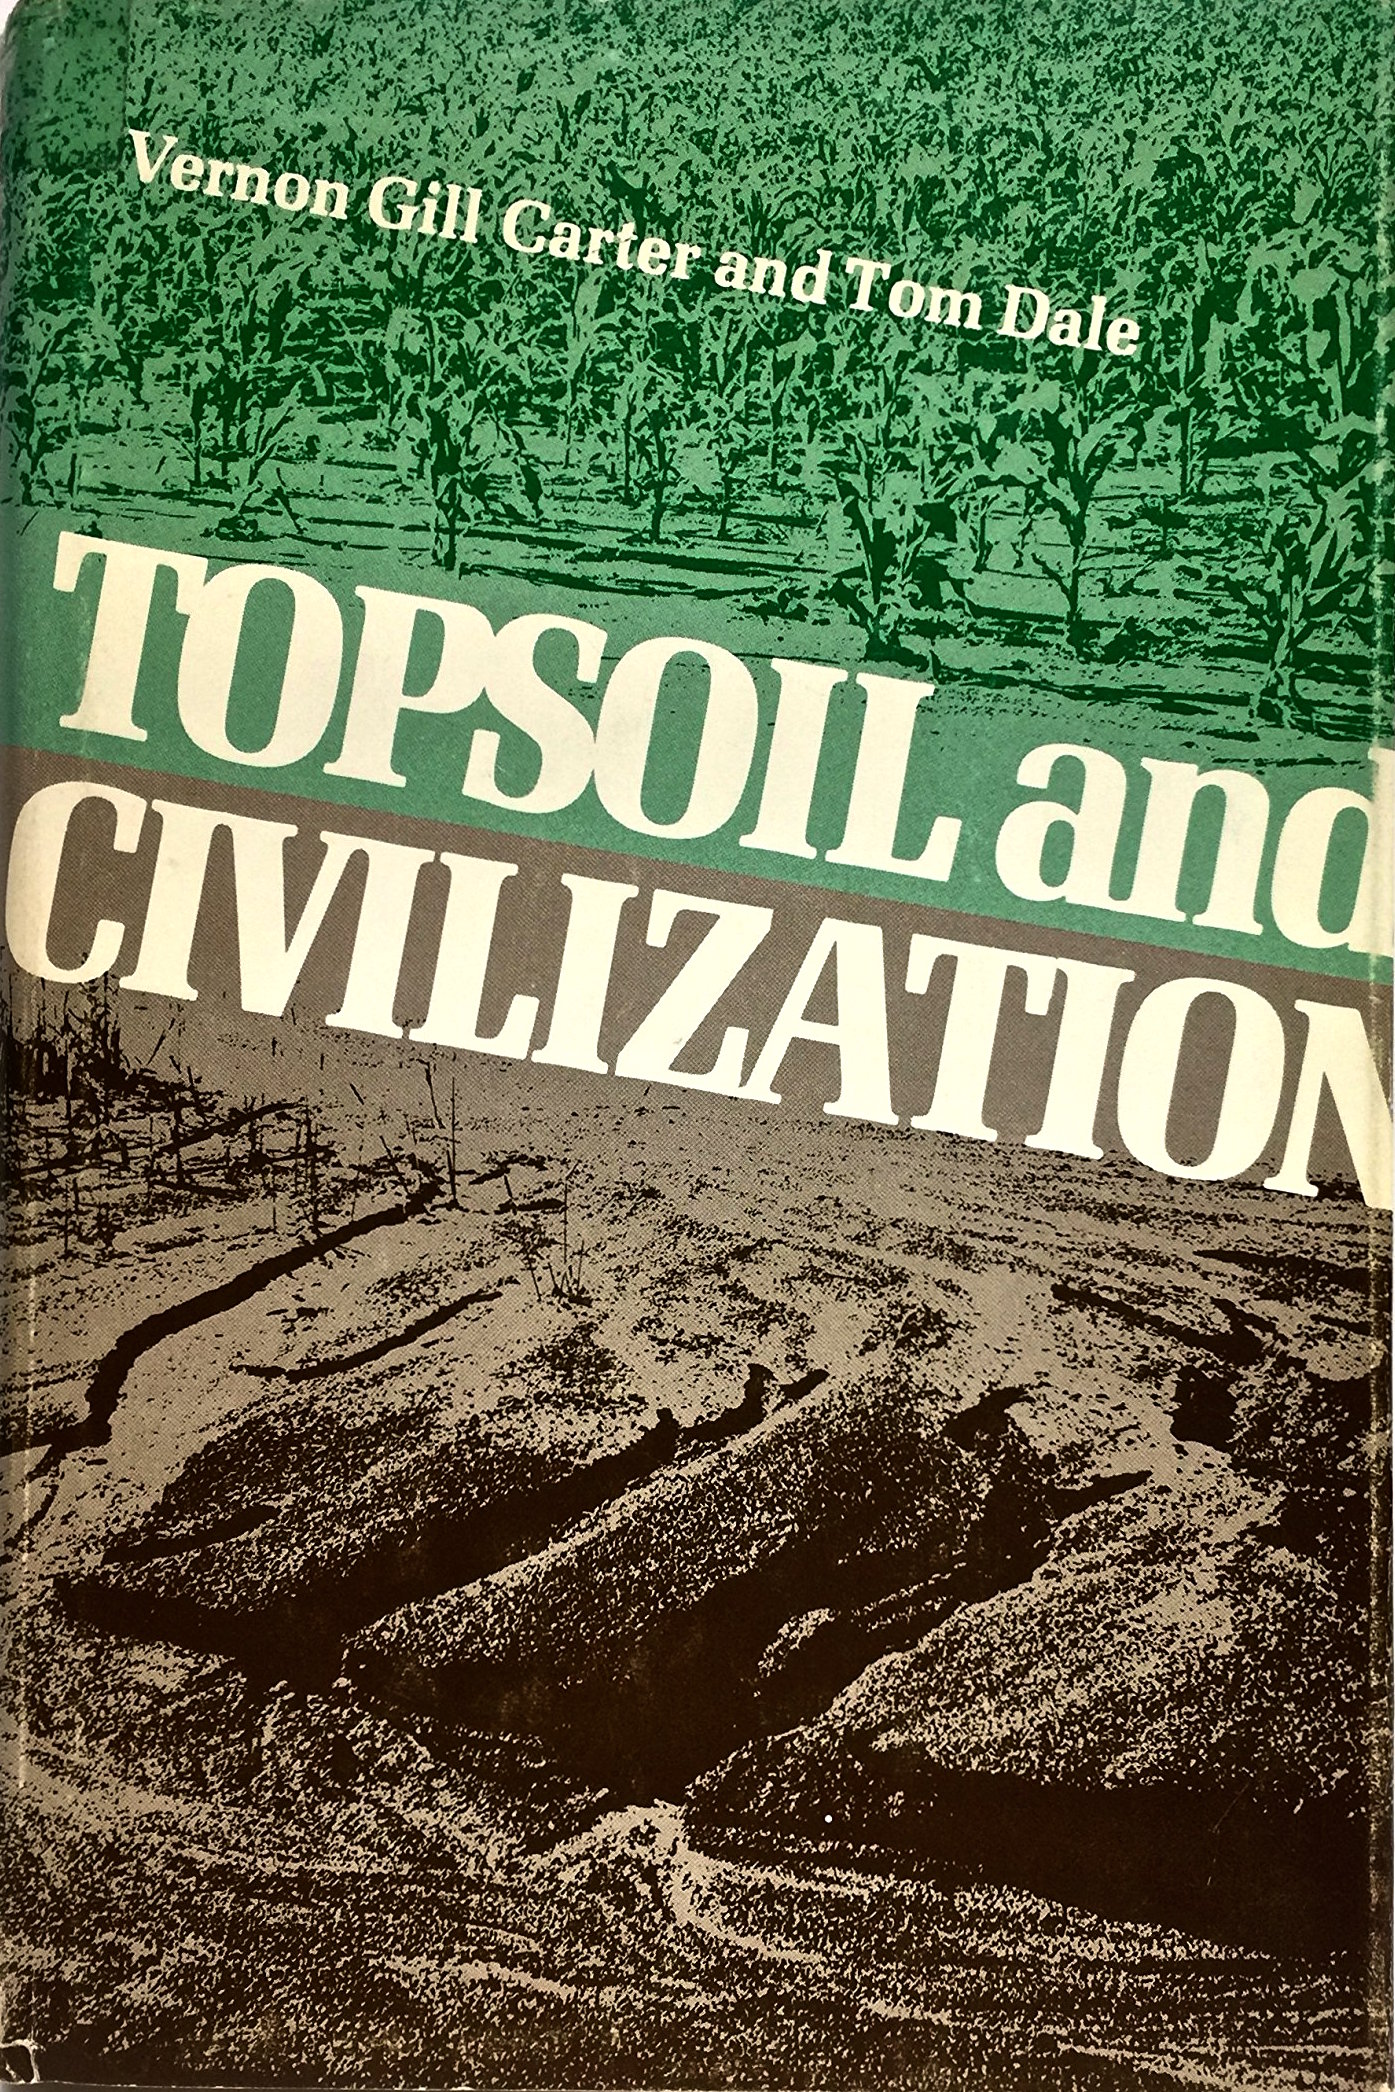 topsoil and civilization - By Vernon Gill Carter and Tom DaleThis classic survey of world history should never have been allowed to fall out of print. It demonstrates how every civilization from Mesopotamia to Rome has destroyed its agricultural resource base and thus destroyed itself. The book also looks at modern-day Europe and the United States with considerable uncertainty about the sustainability of our own system.